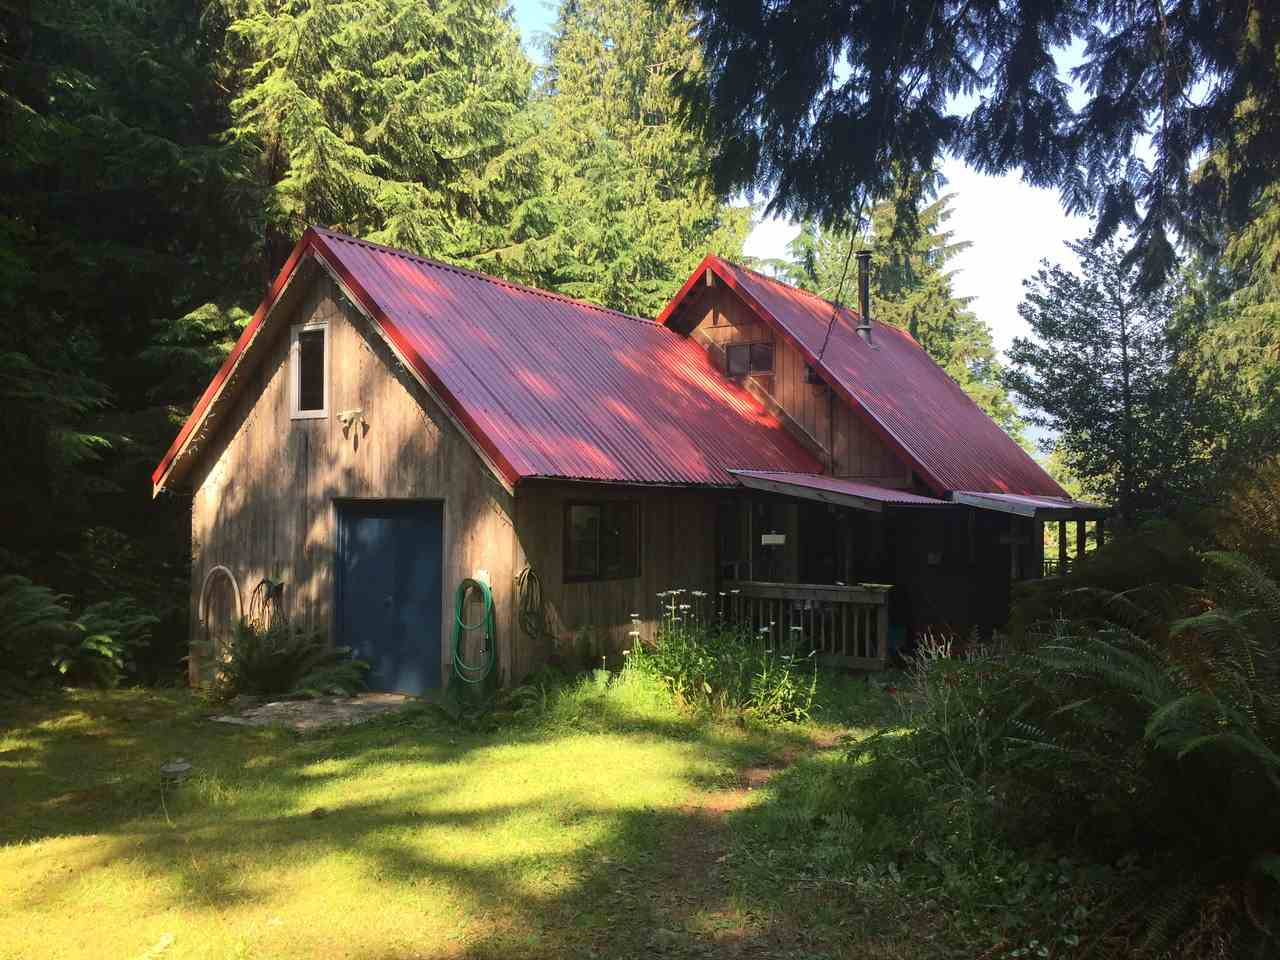 Main Photo: 545 SHAWANABE Road: Gambier Island House for sale (Sunshine Coast)  : MLS® # R2190602